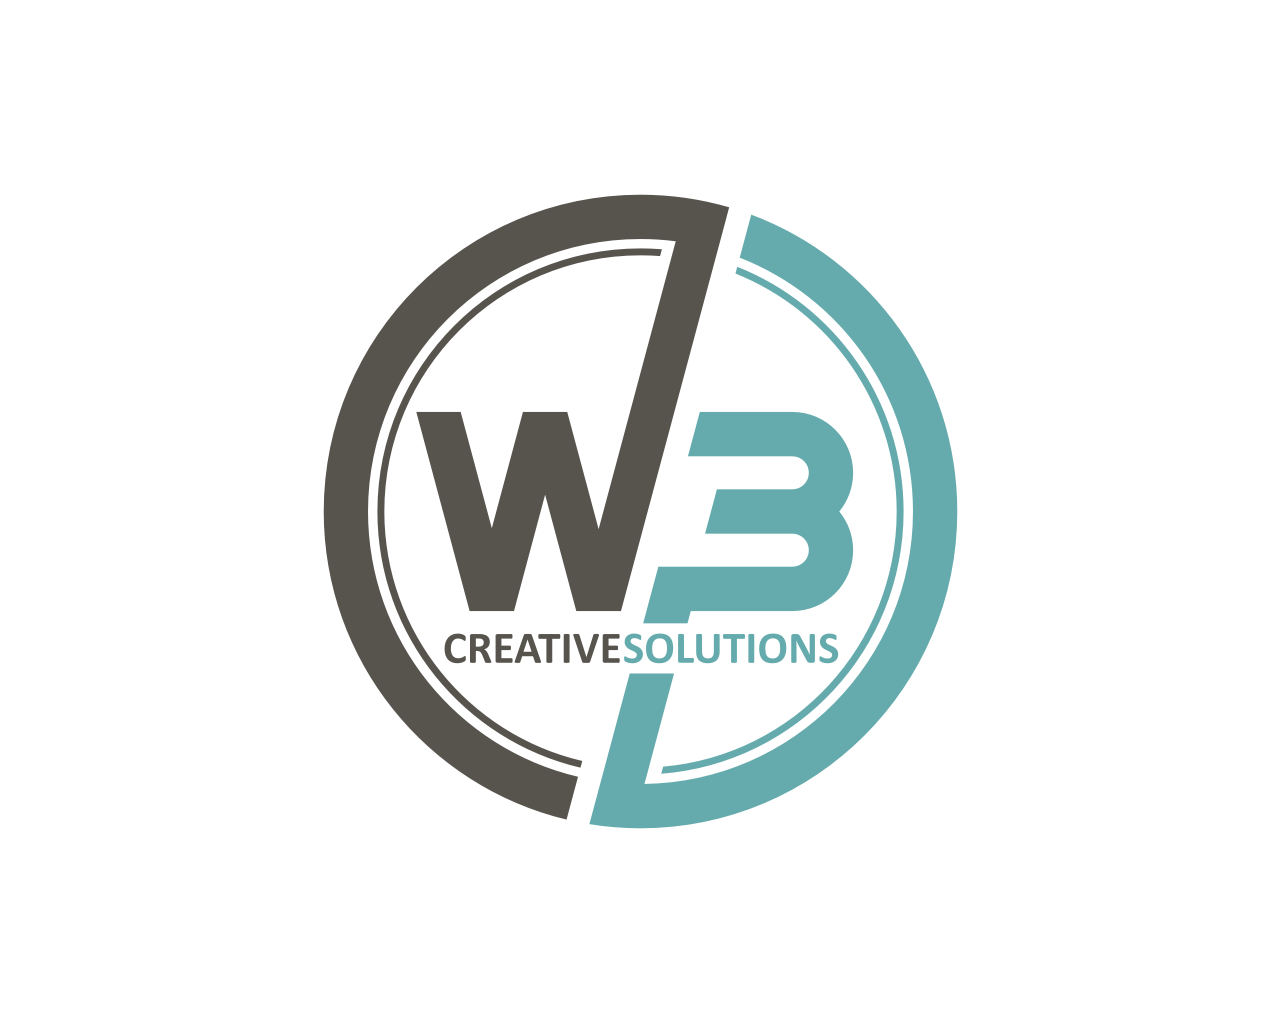 w3 Creative Solutions